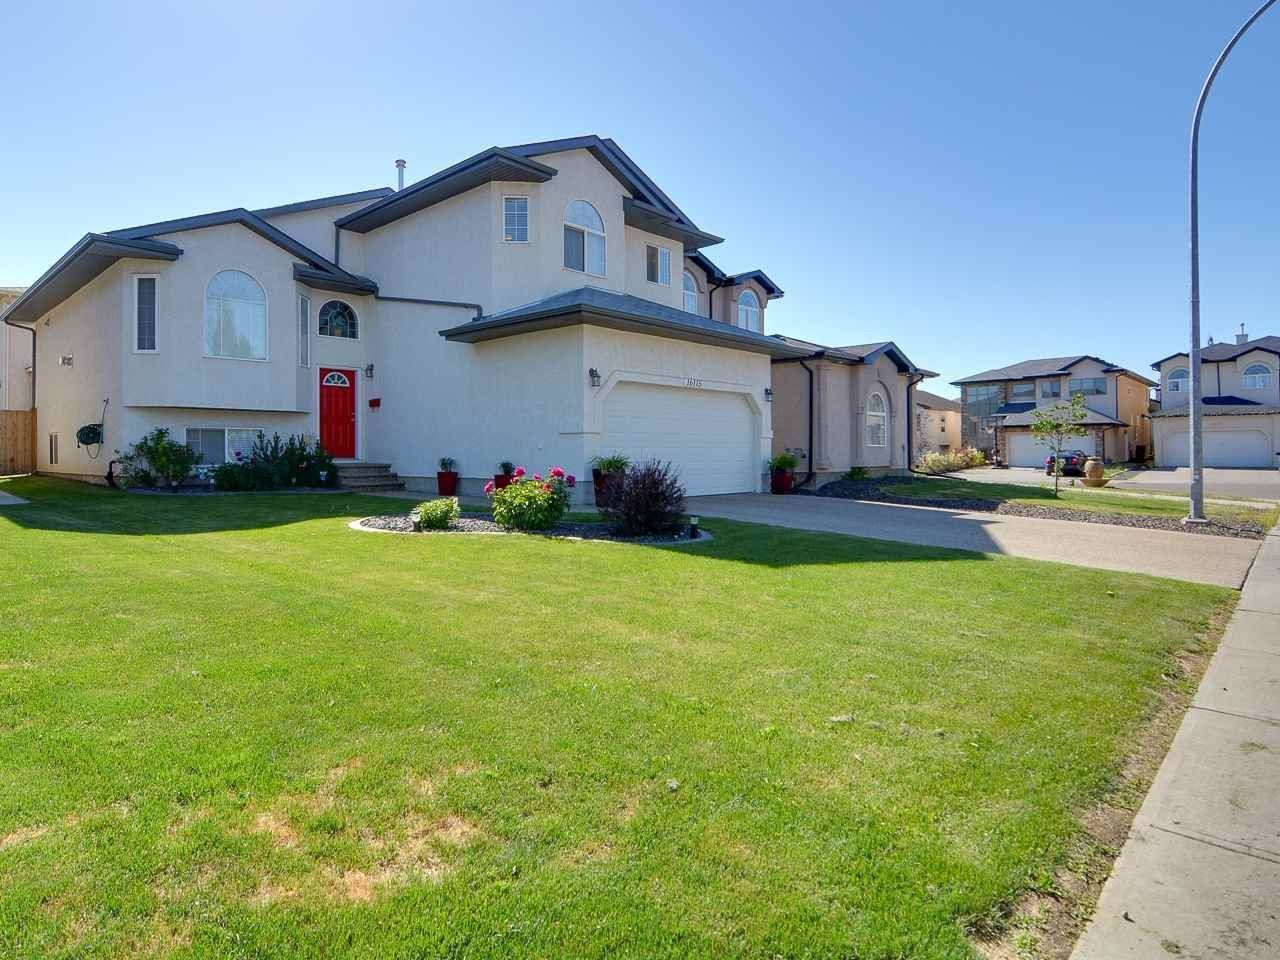 Carlton Home For Sale Duplex for sale, Home, House styles